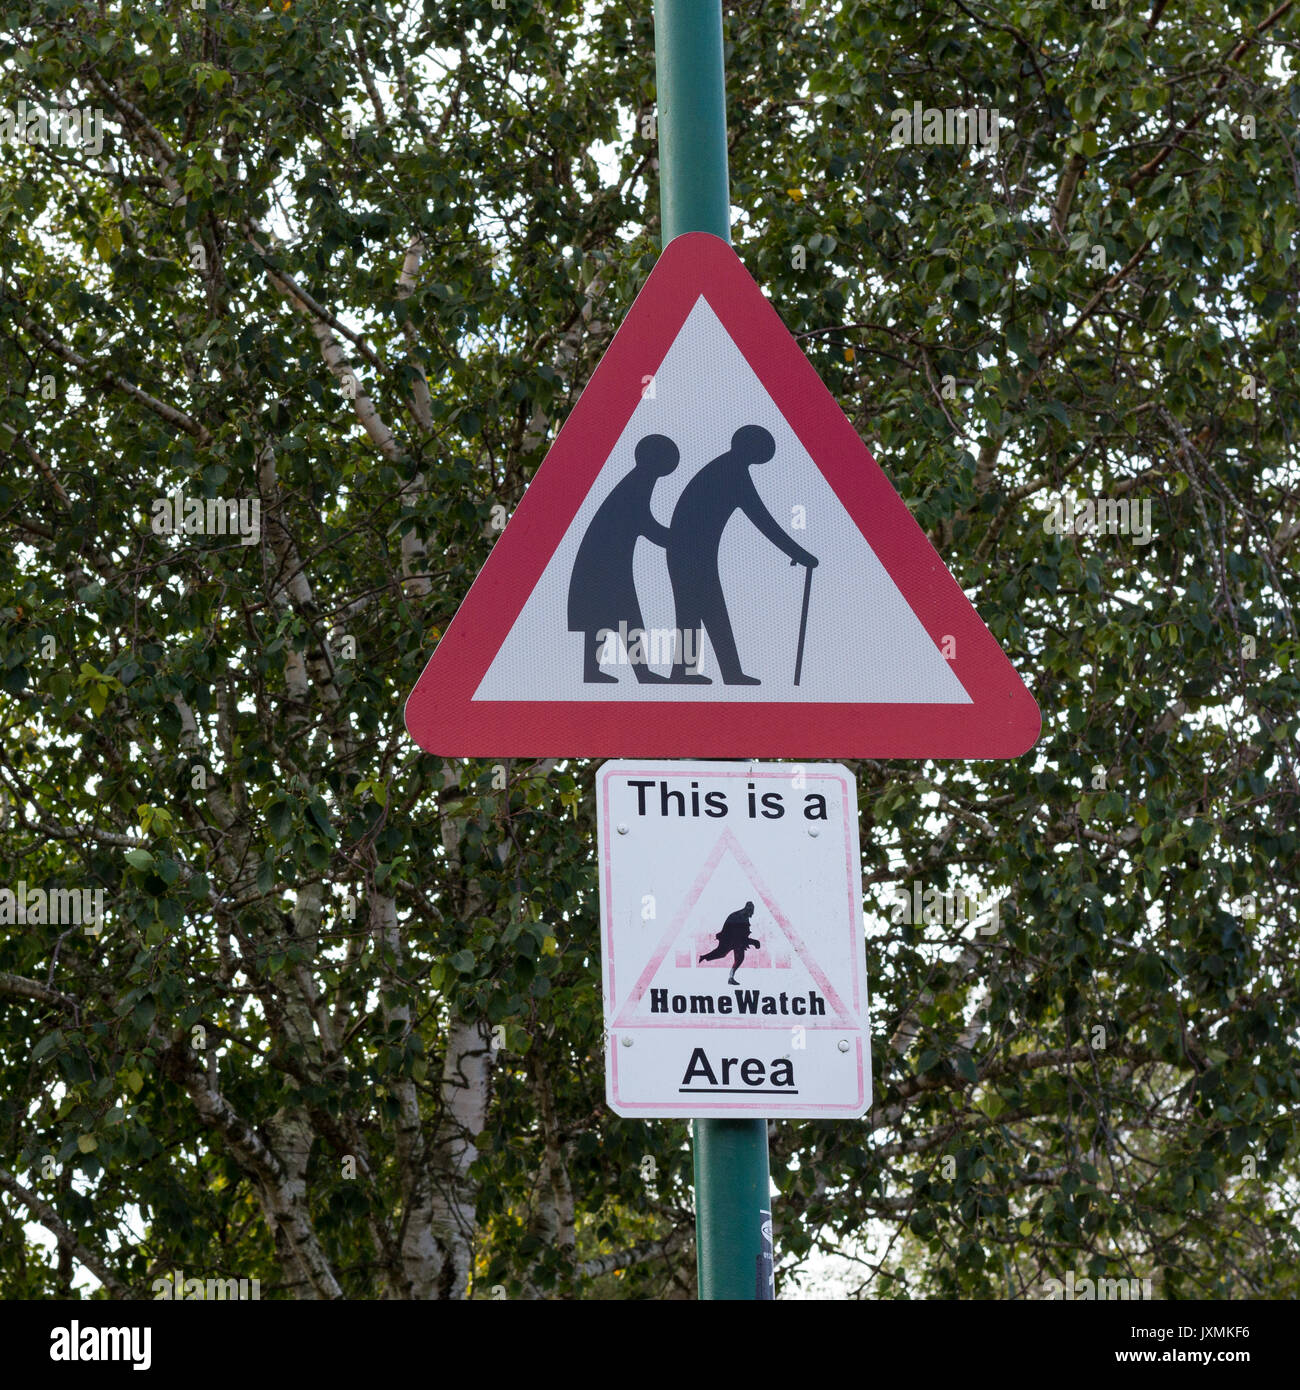 Old people warning red triangular road sign, This is a HomeWatch Area sign, Dorset, UK Stock Photo